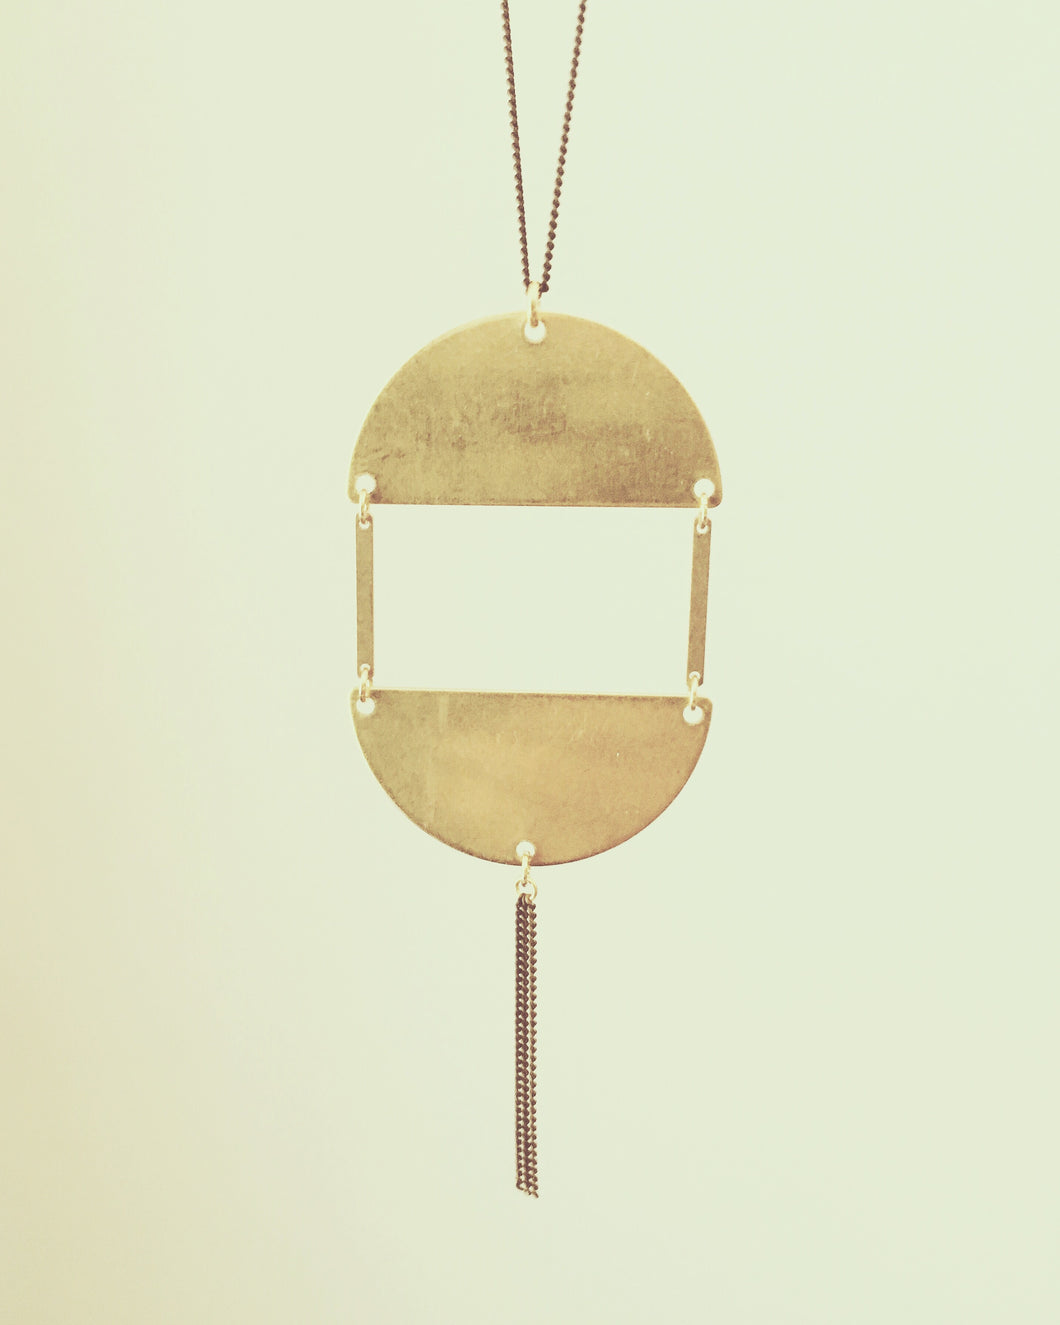 The Shullie Necklace